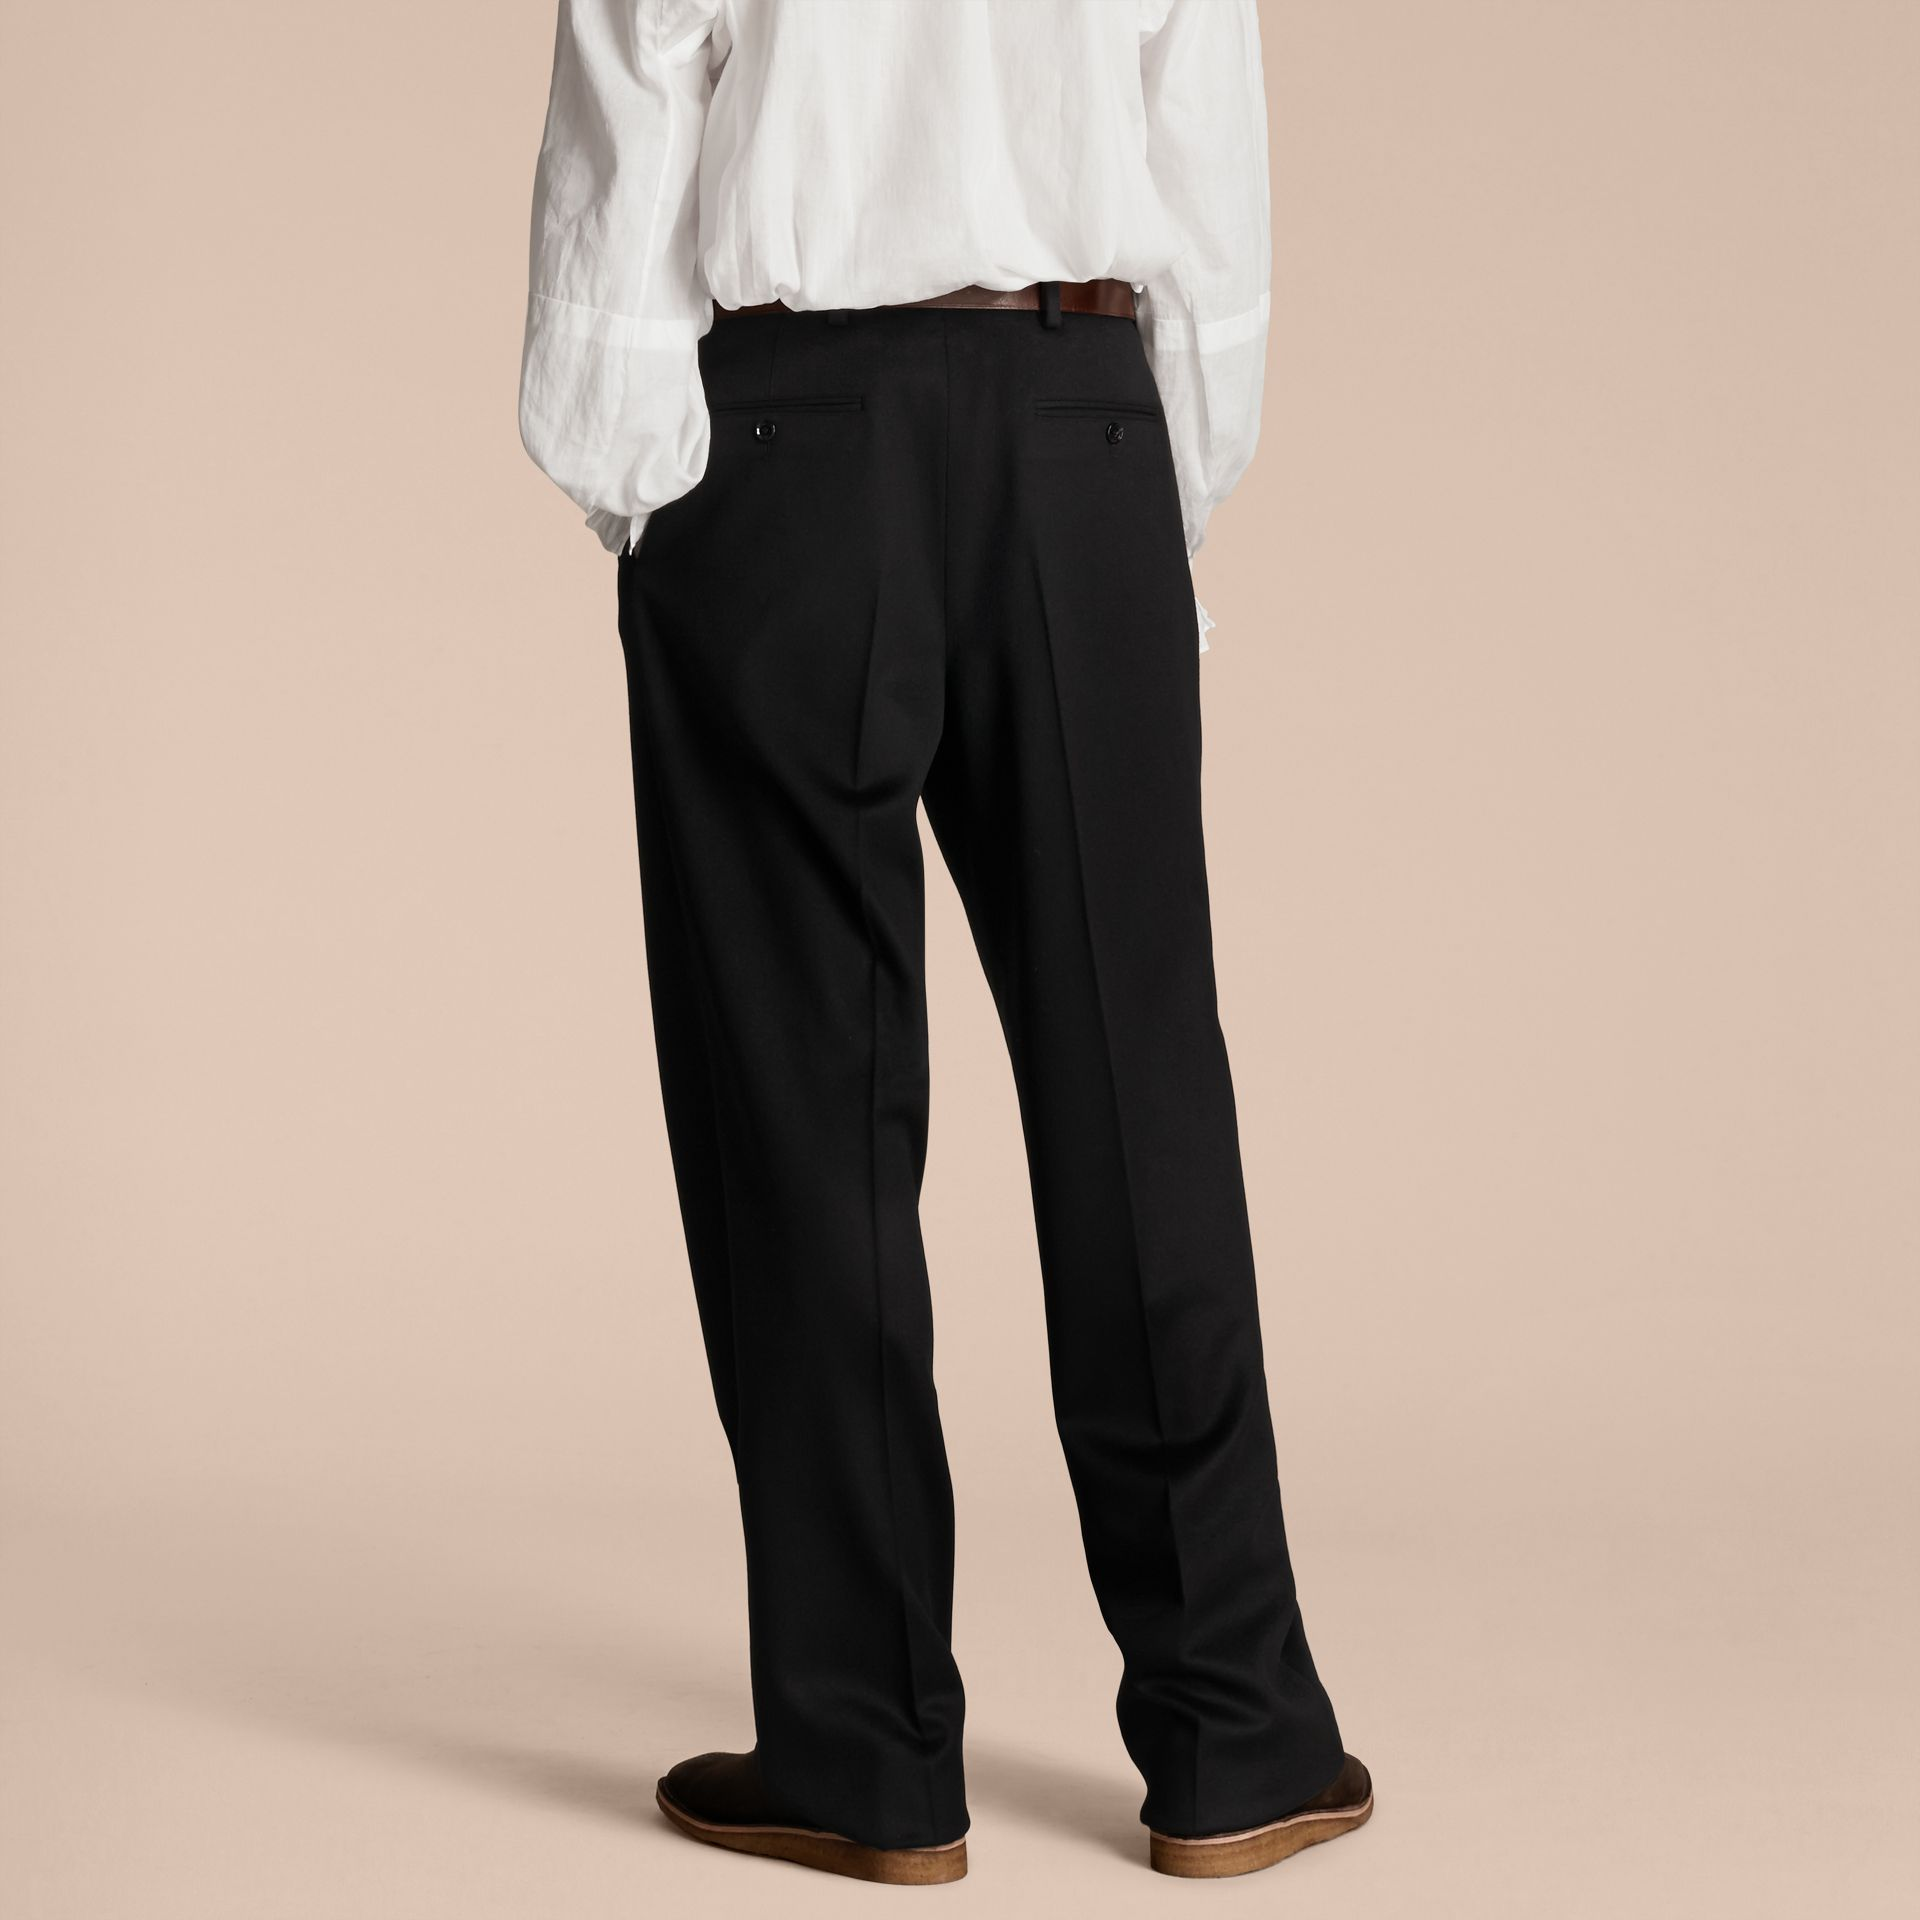 Wide-leg English Moleskin Wool Trousers - gallery image 3